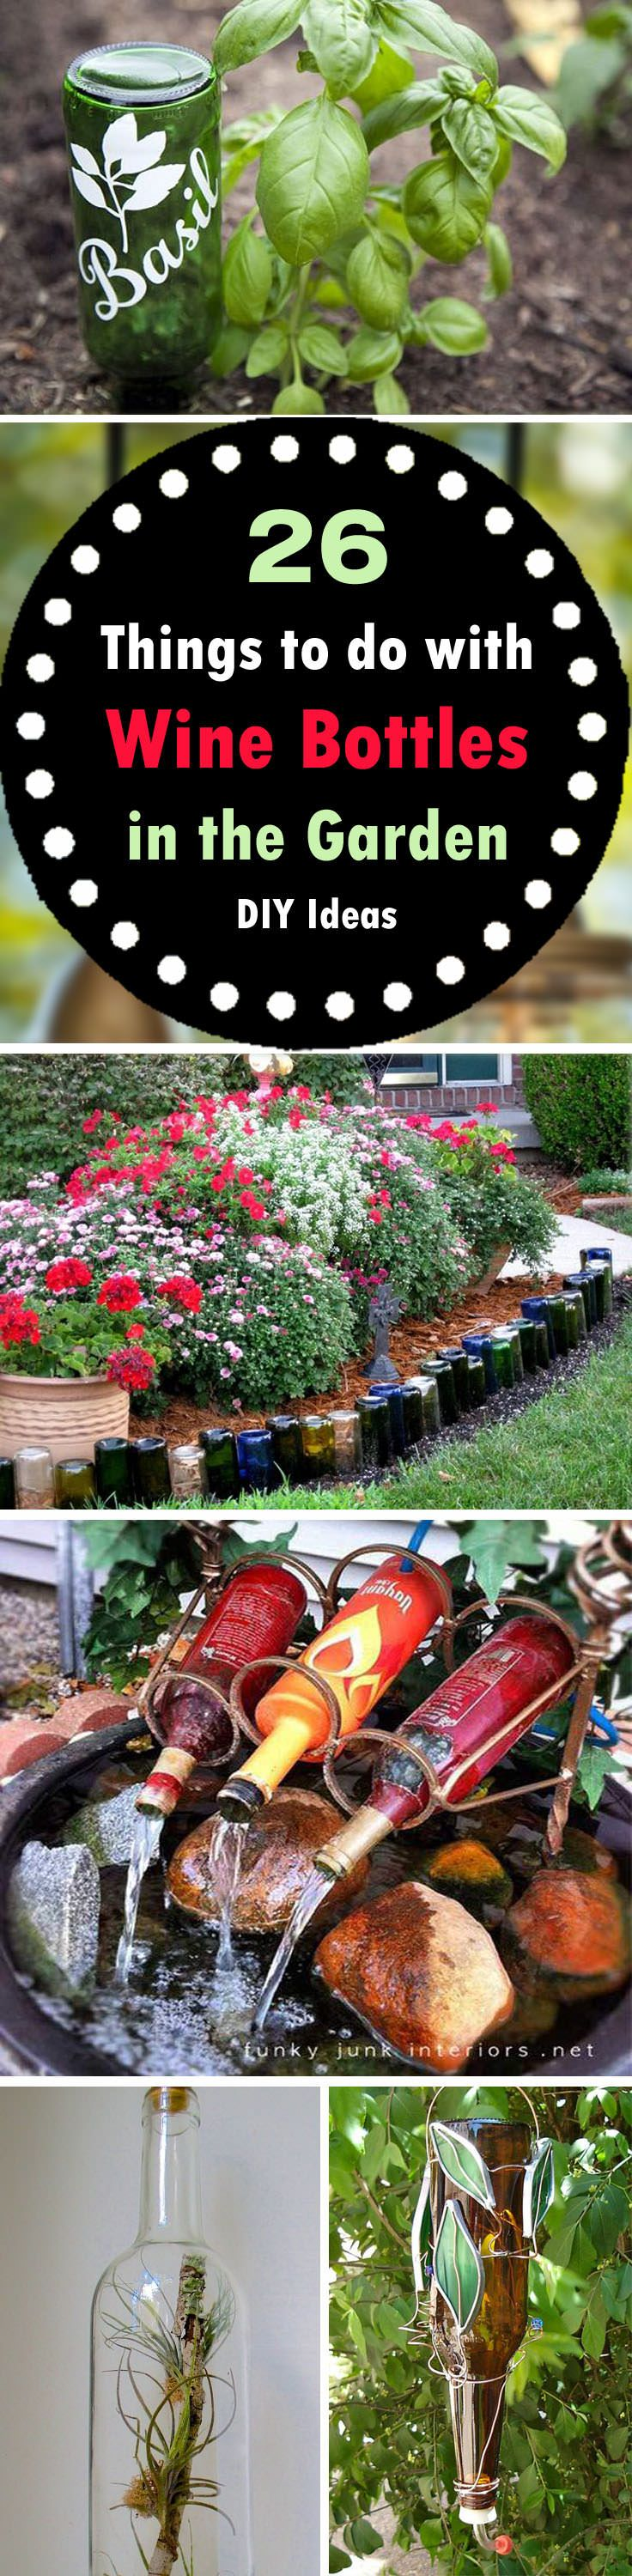 If you have got empty wine bottles in your home then these 26 DIY wine bottle ideas for garden and home will interest you for sure.